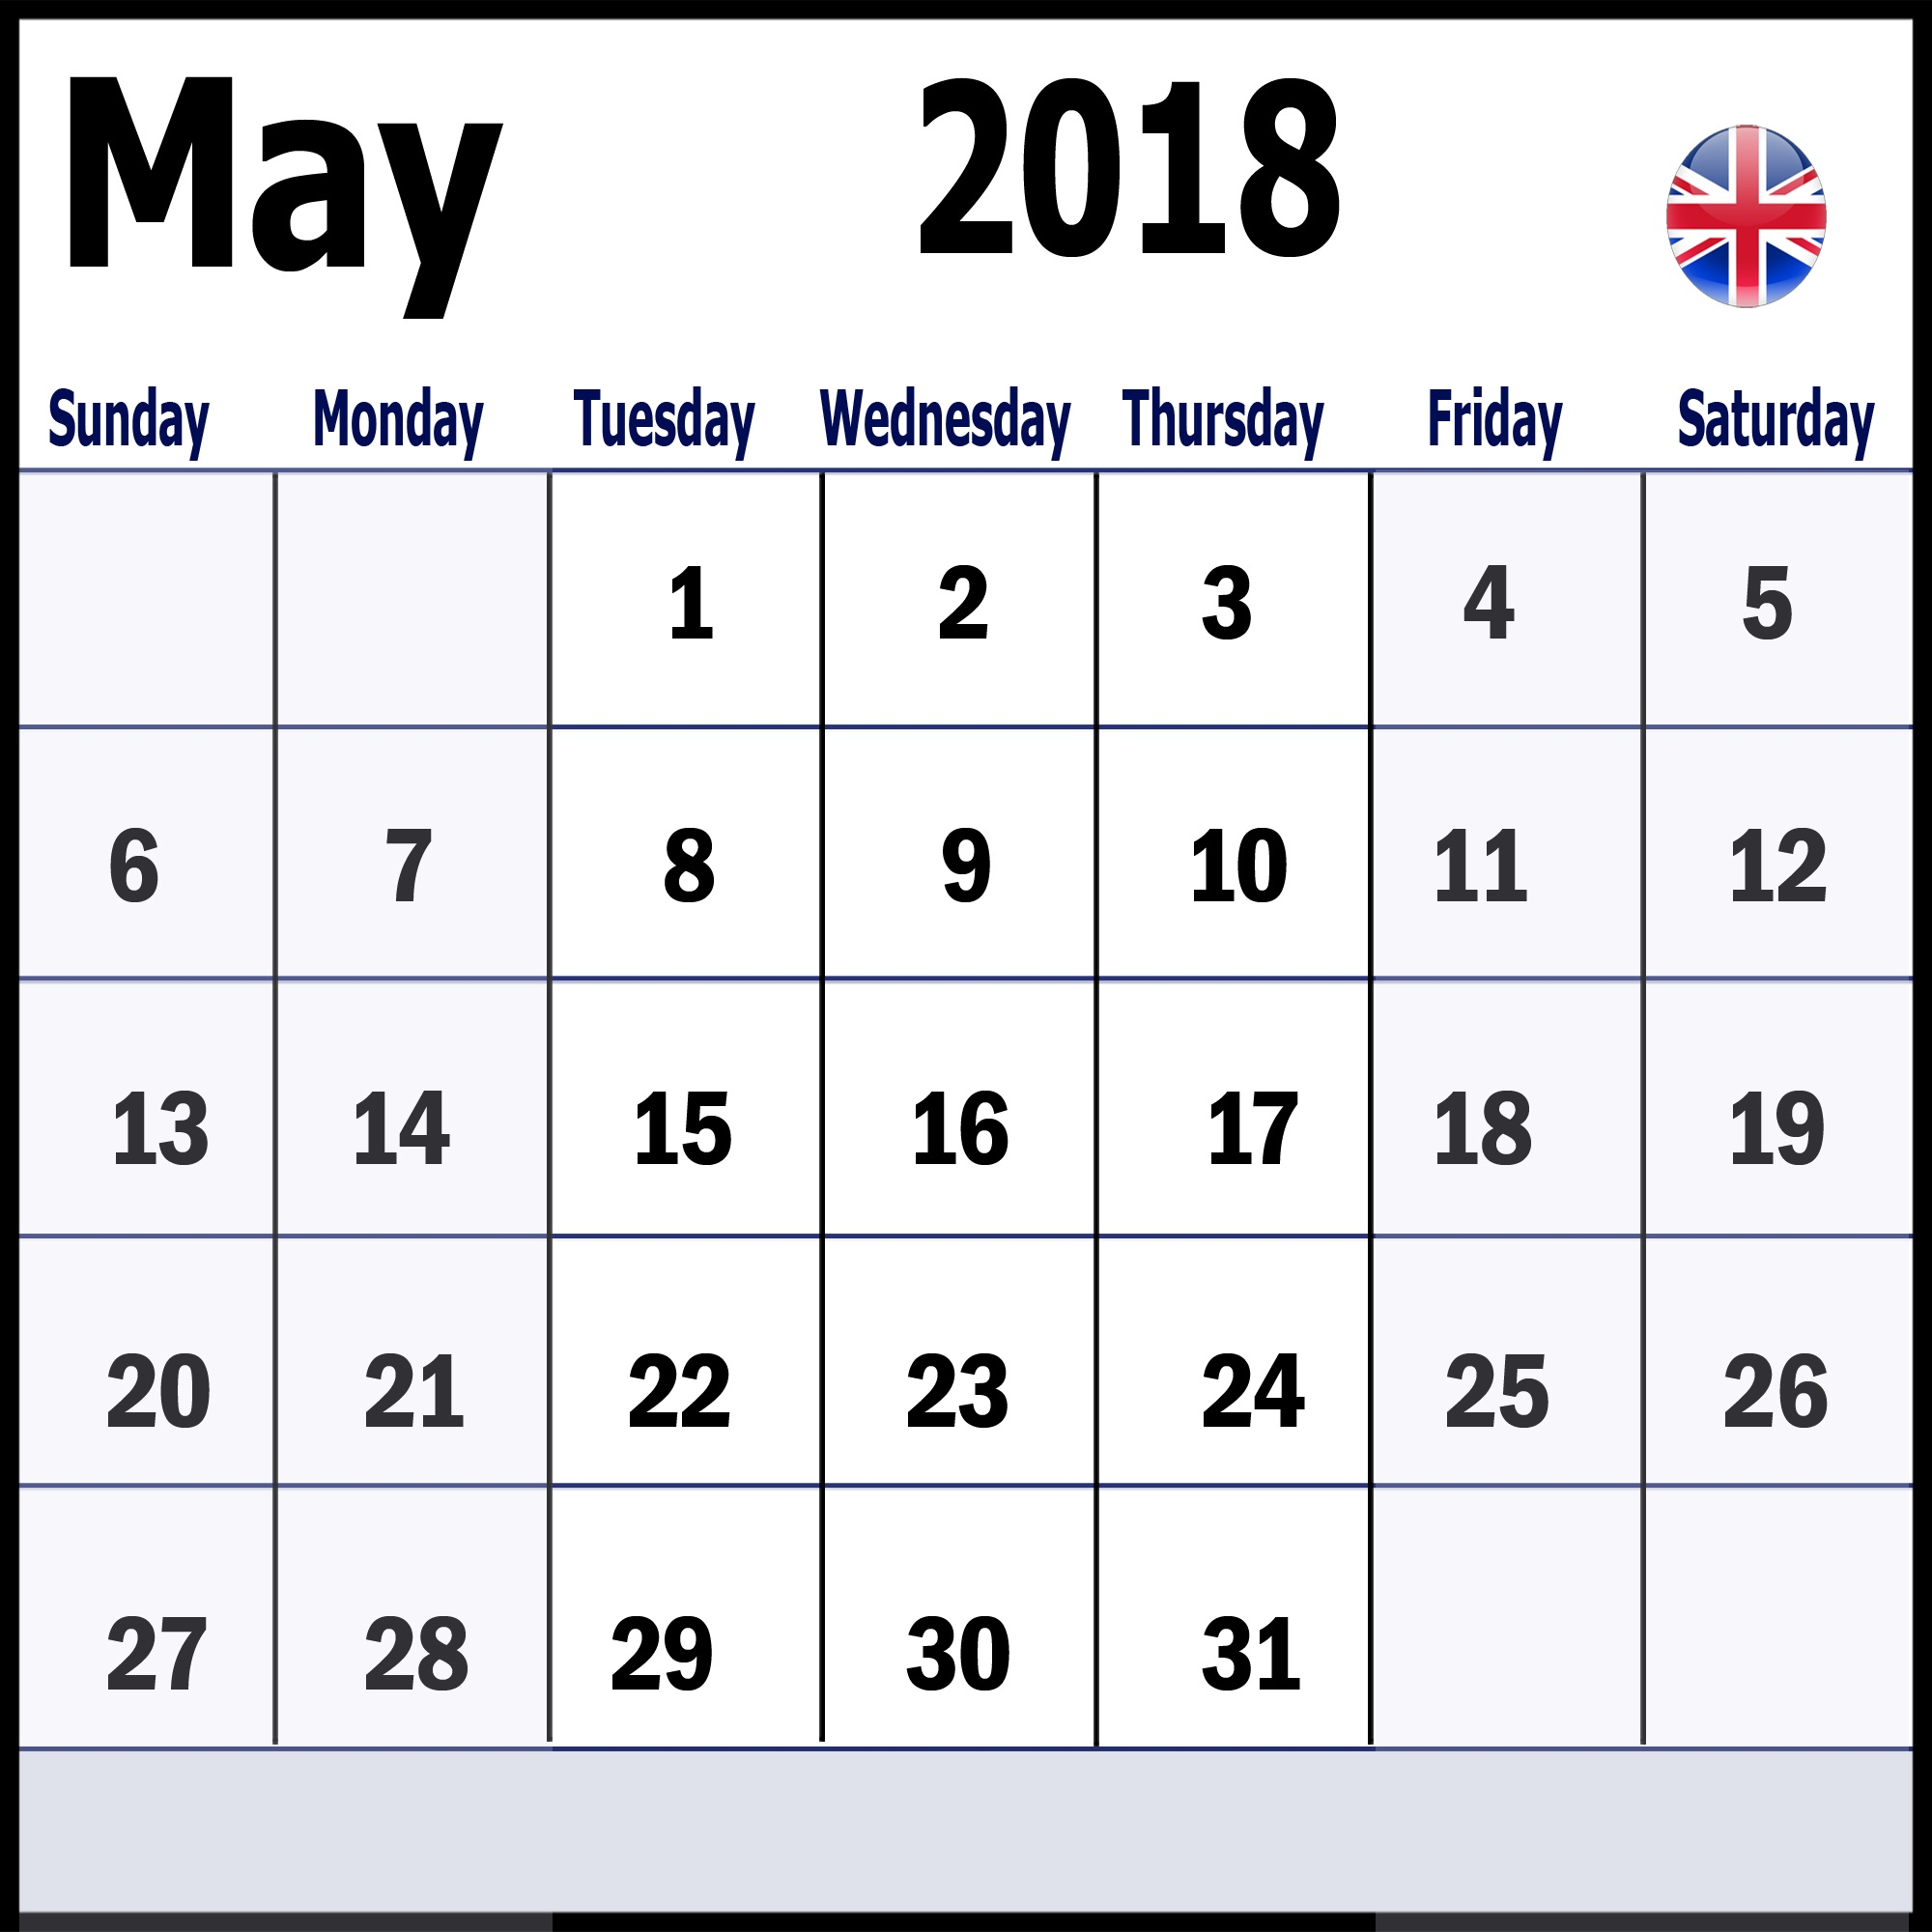 May 2018 UK Calendar With Holidays